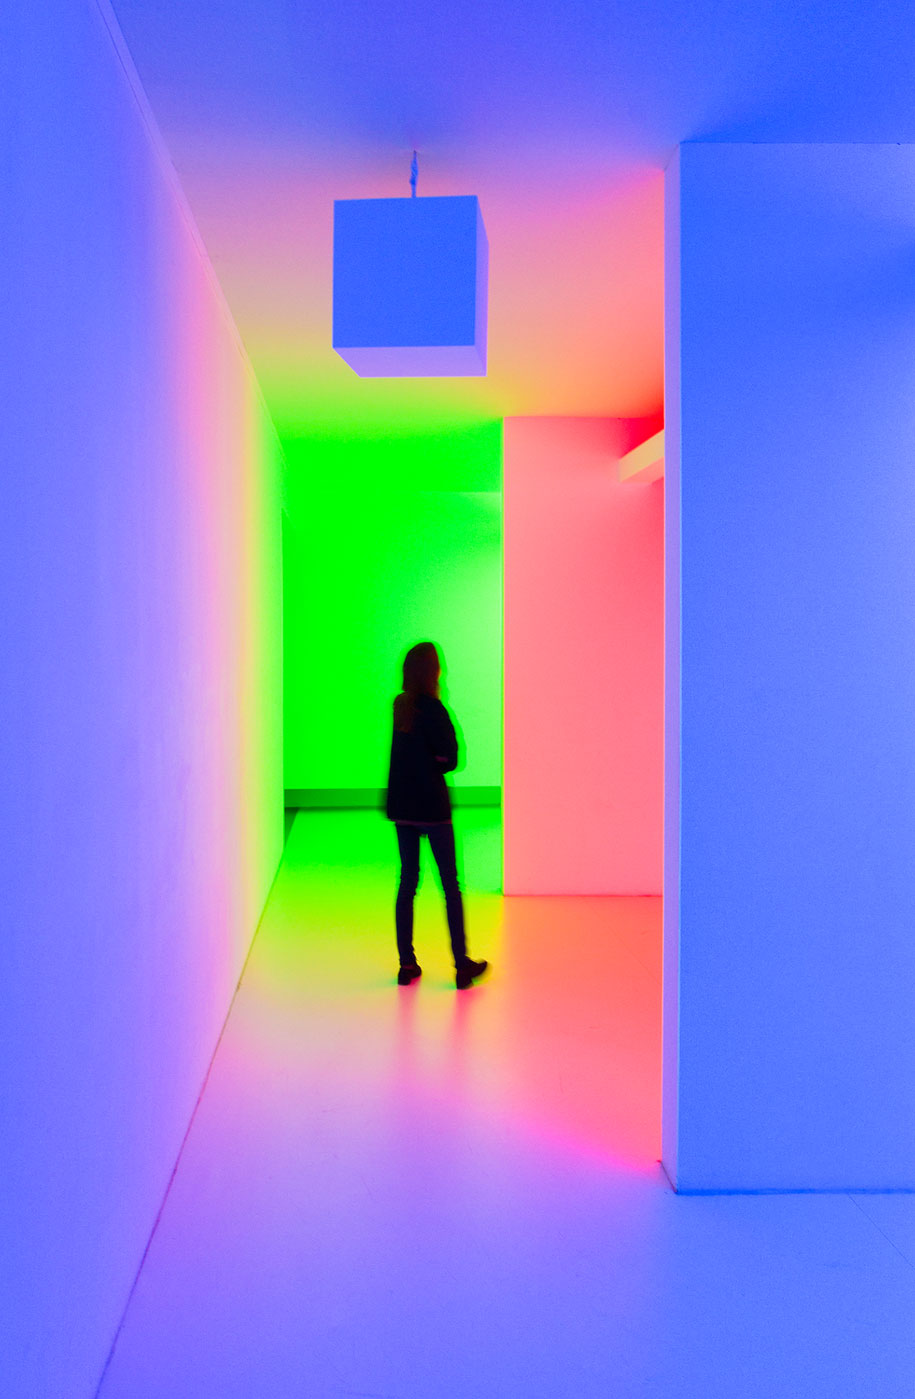 MCA---Light-Show---Carlos-Cruz-Diez-(1)